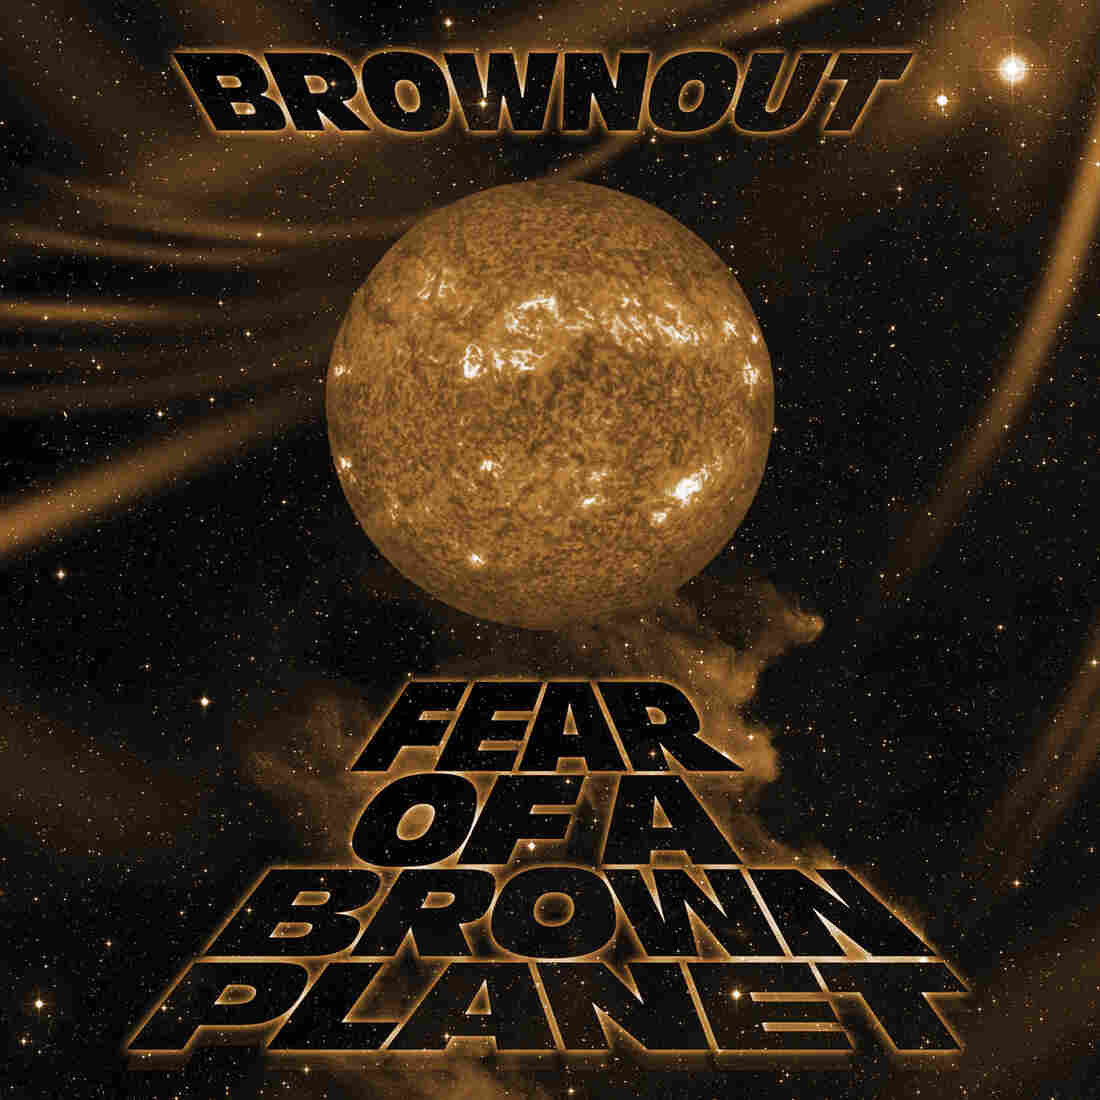 Brownout, Fear of a Brown Planet